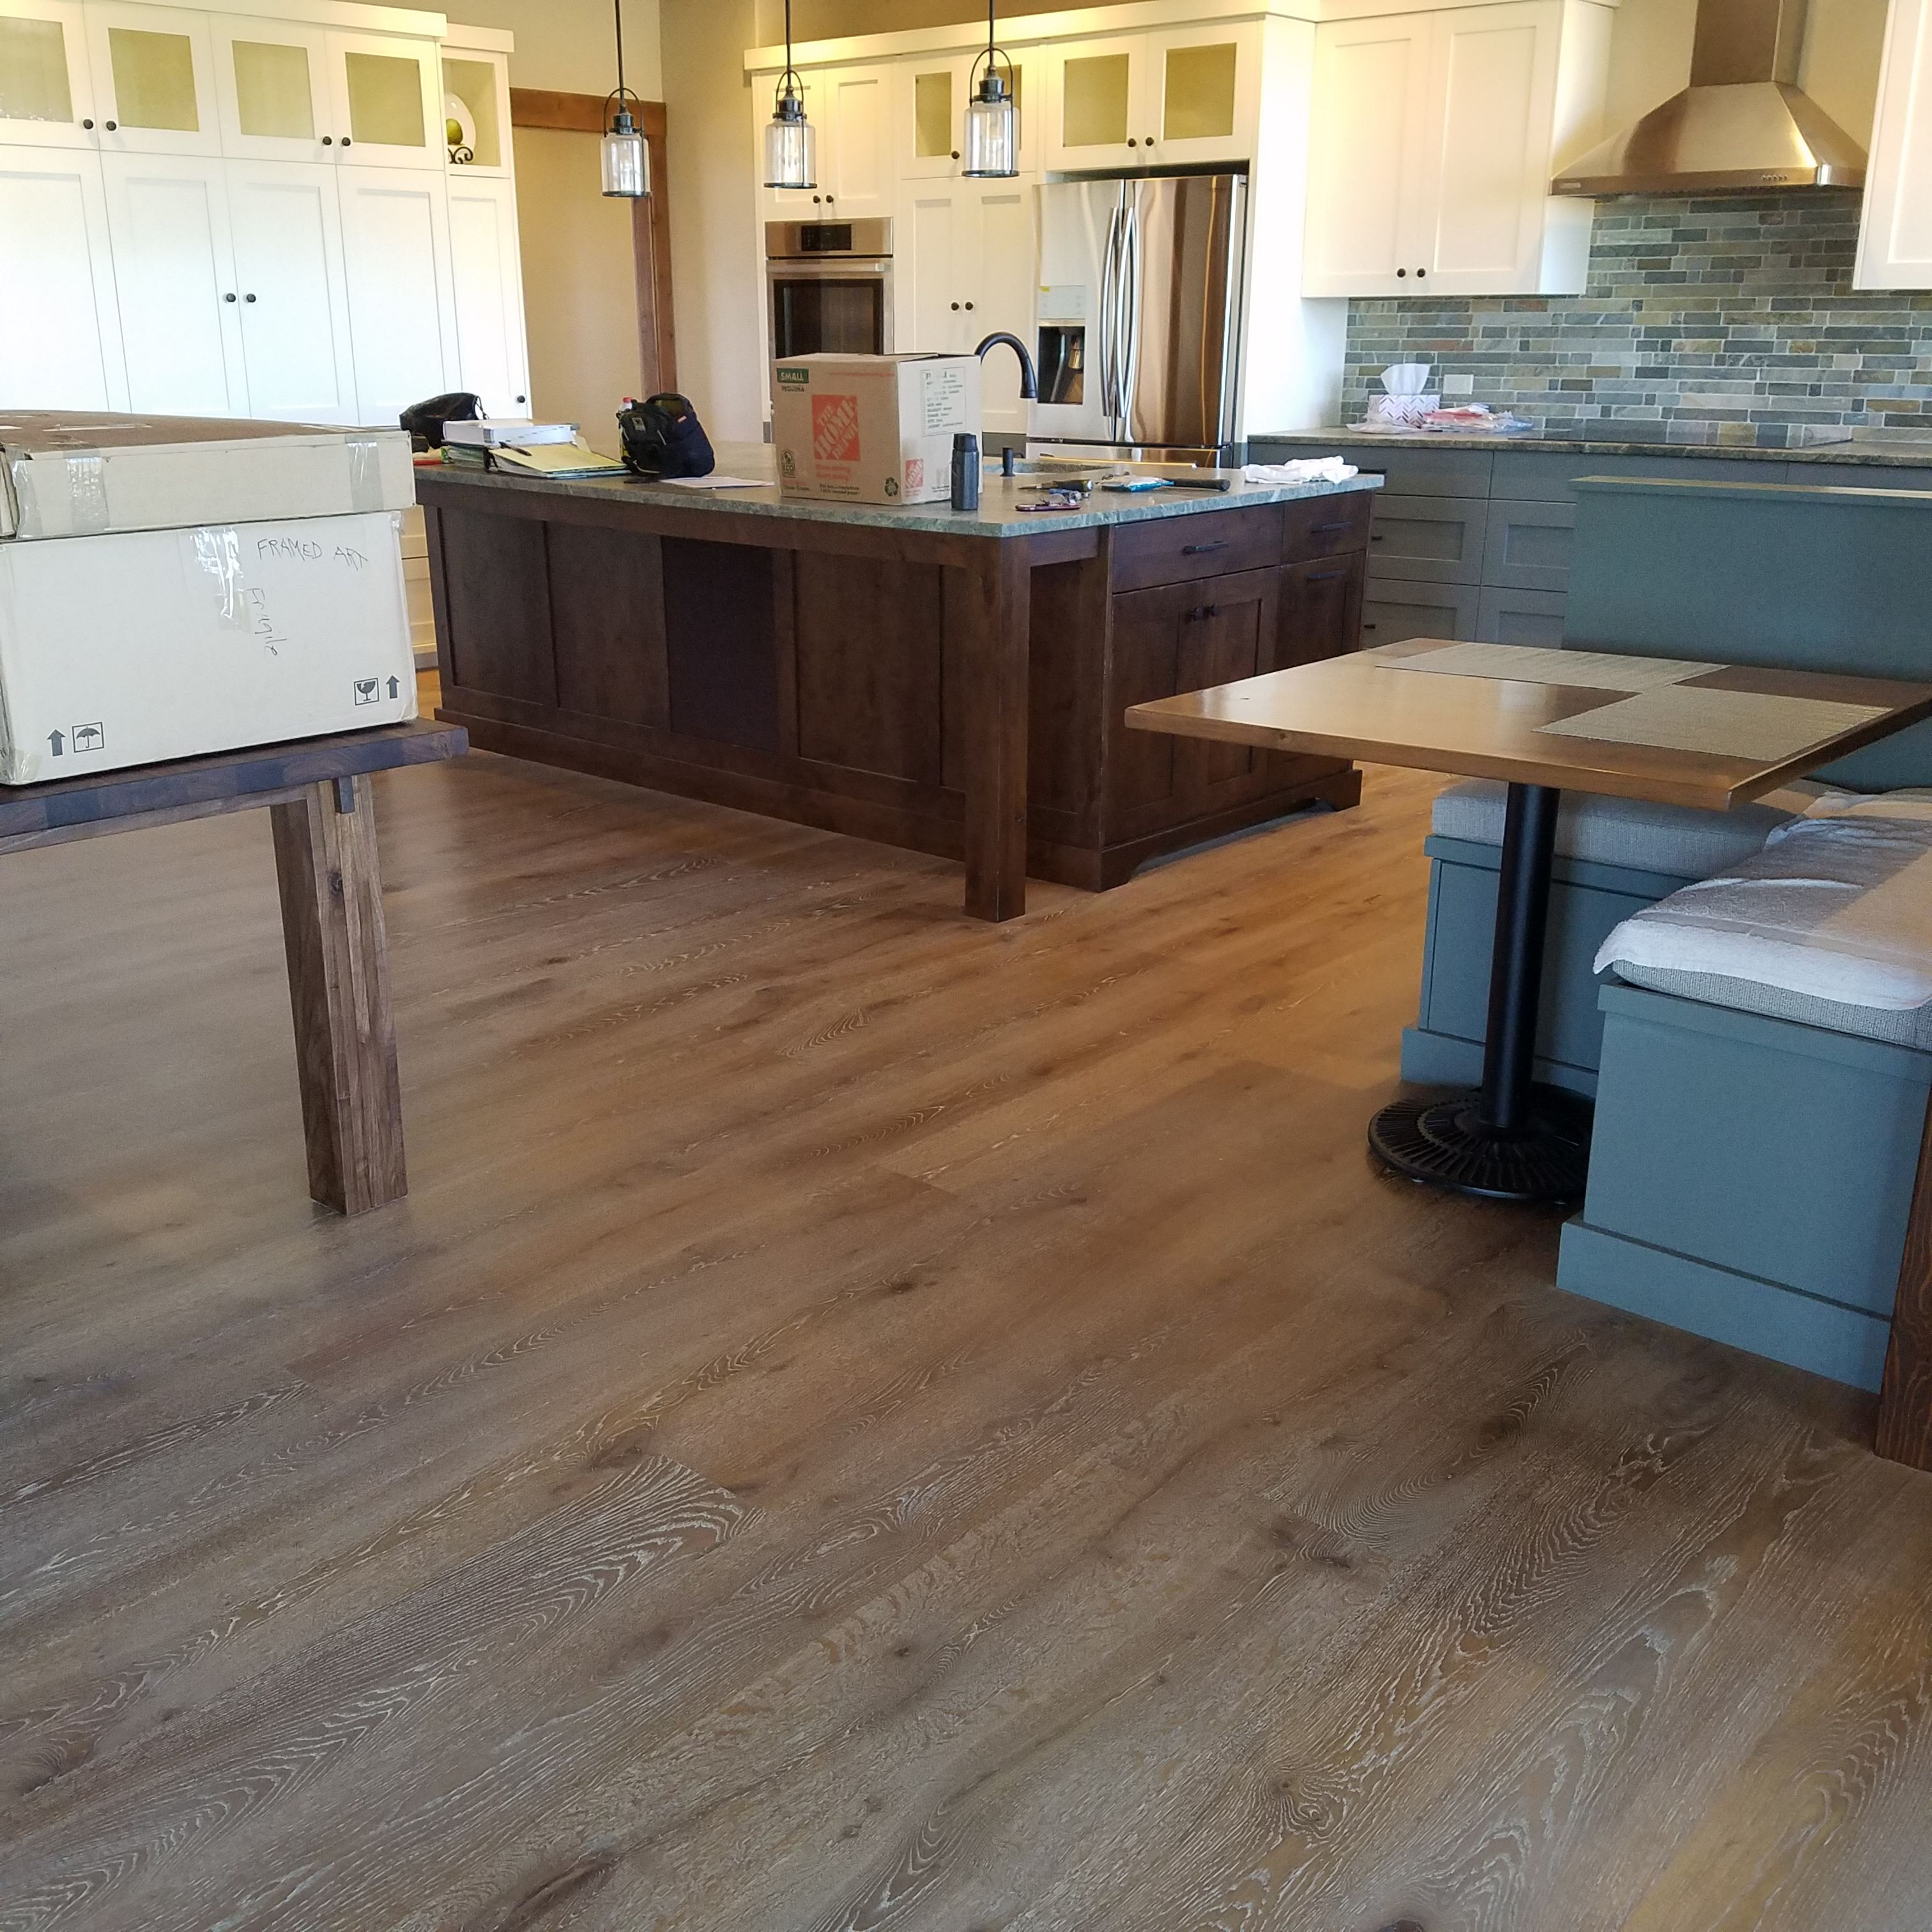 Castlebespokeflooring Looking Great 3 4 X 8 X 10 With 6mm Wear Layer Installed Unfinished And Site Finished By Contractor W Flooring Home Rubio Monocoat